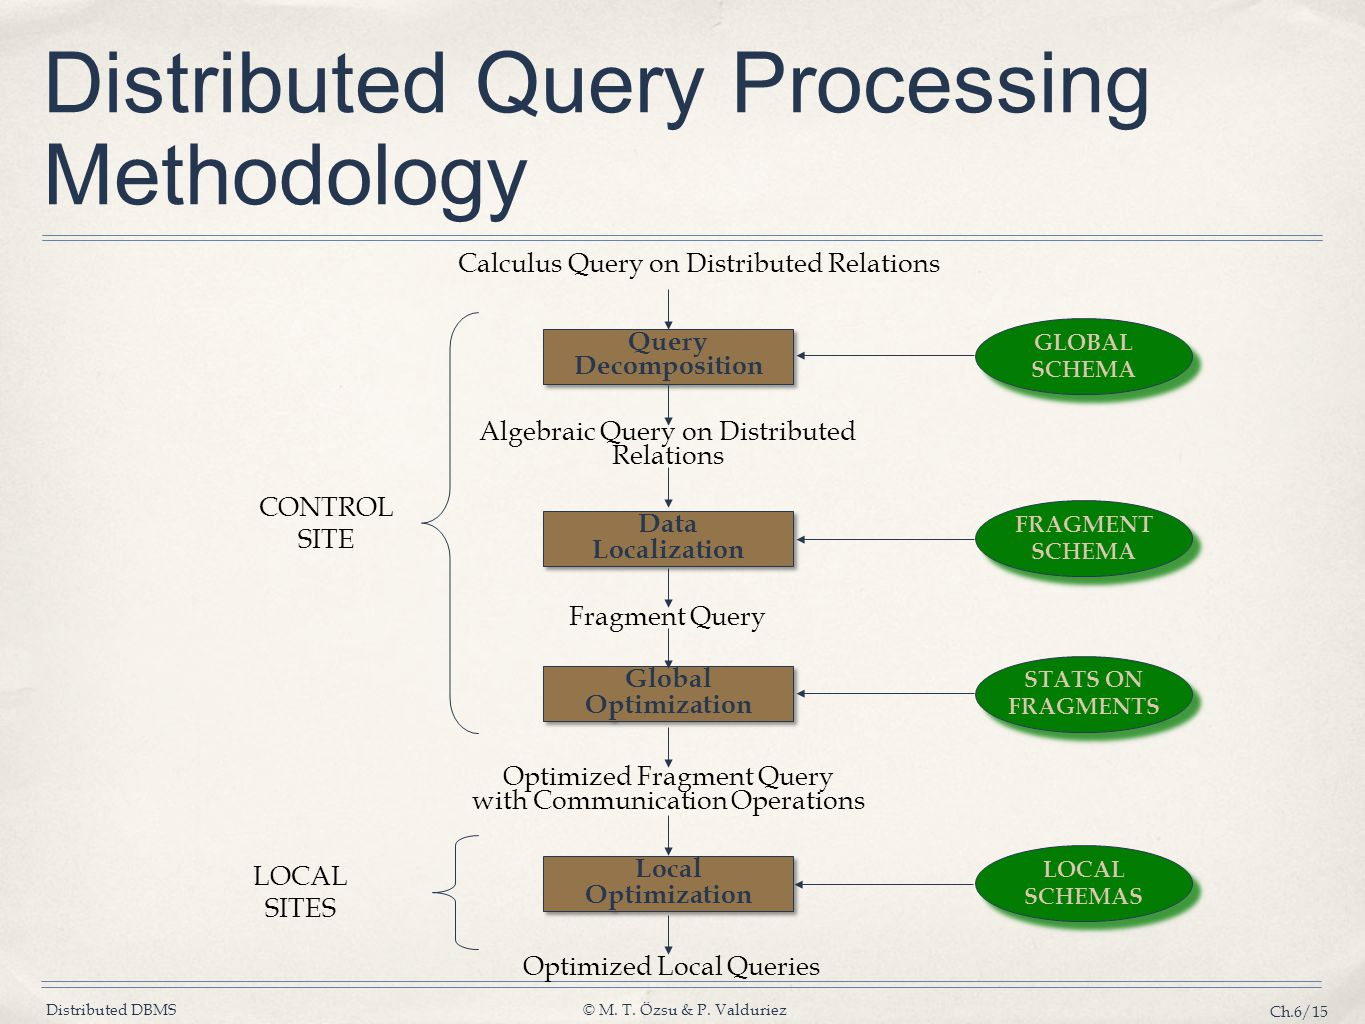 Distributed DBMS© M. T. Özsu & P. Valduriez Ch.6/15 Distributed Query Processing Methodology Calculus Query on Distributed Relations CONTROL SITE LOCA